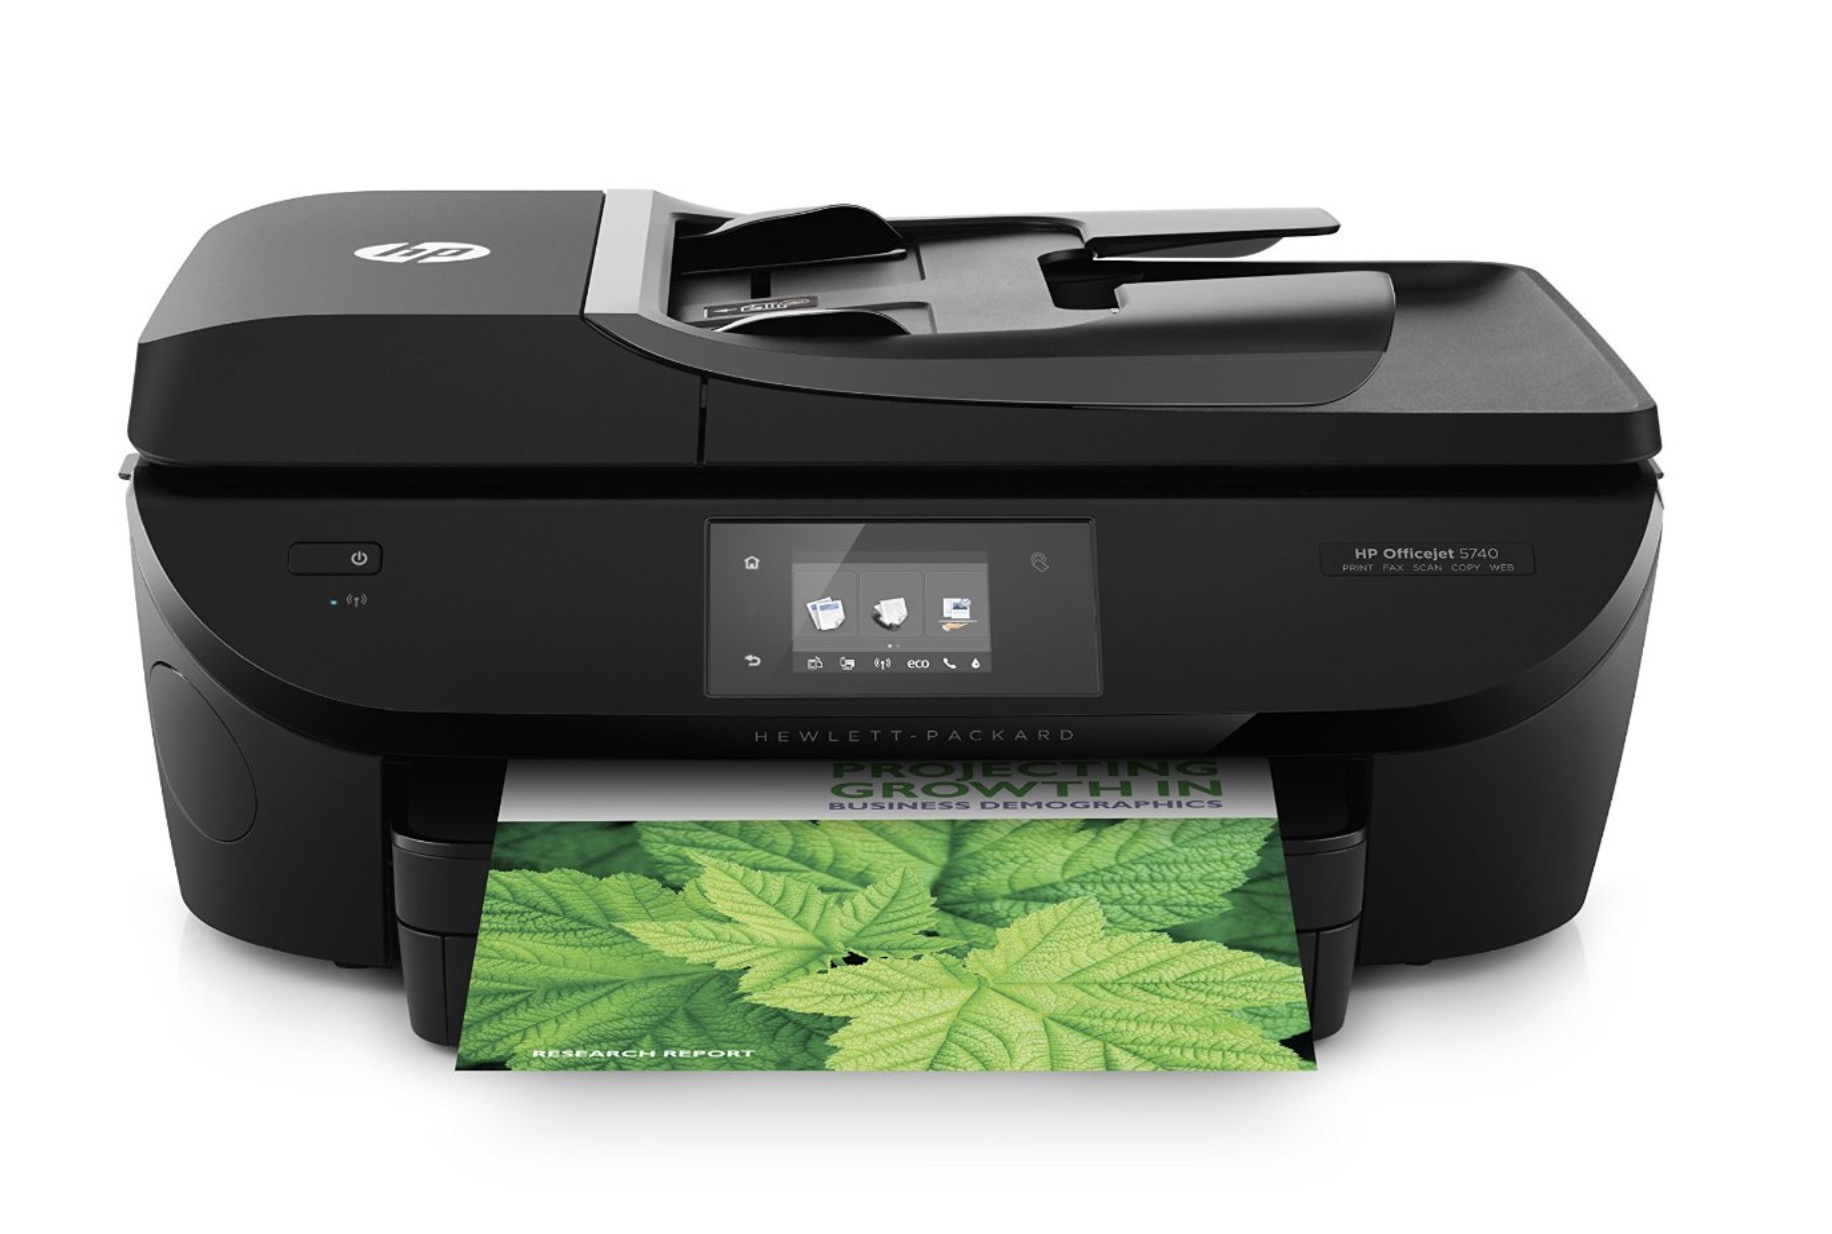 HP OfficeJet 5740 AIO